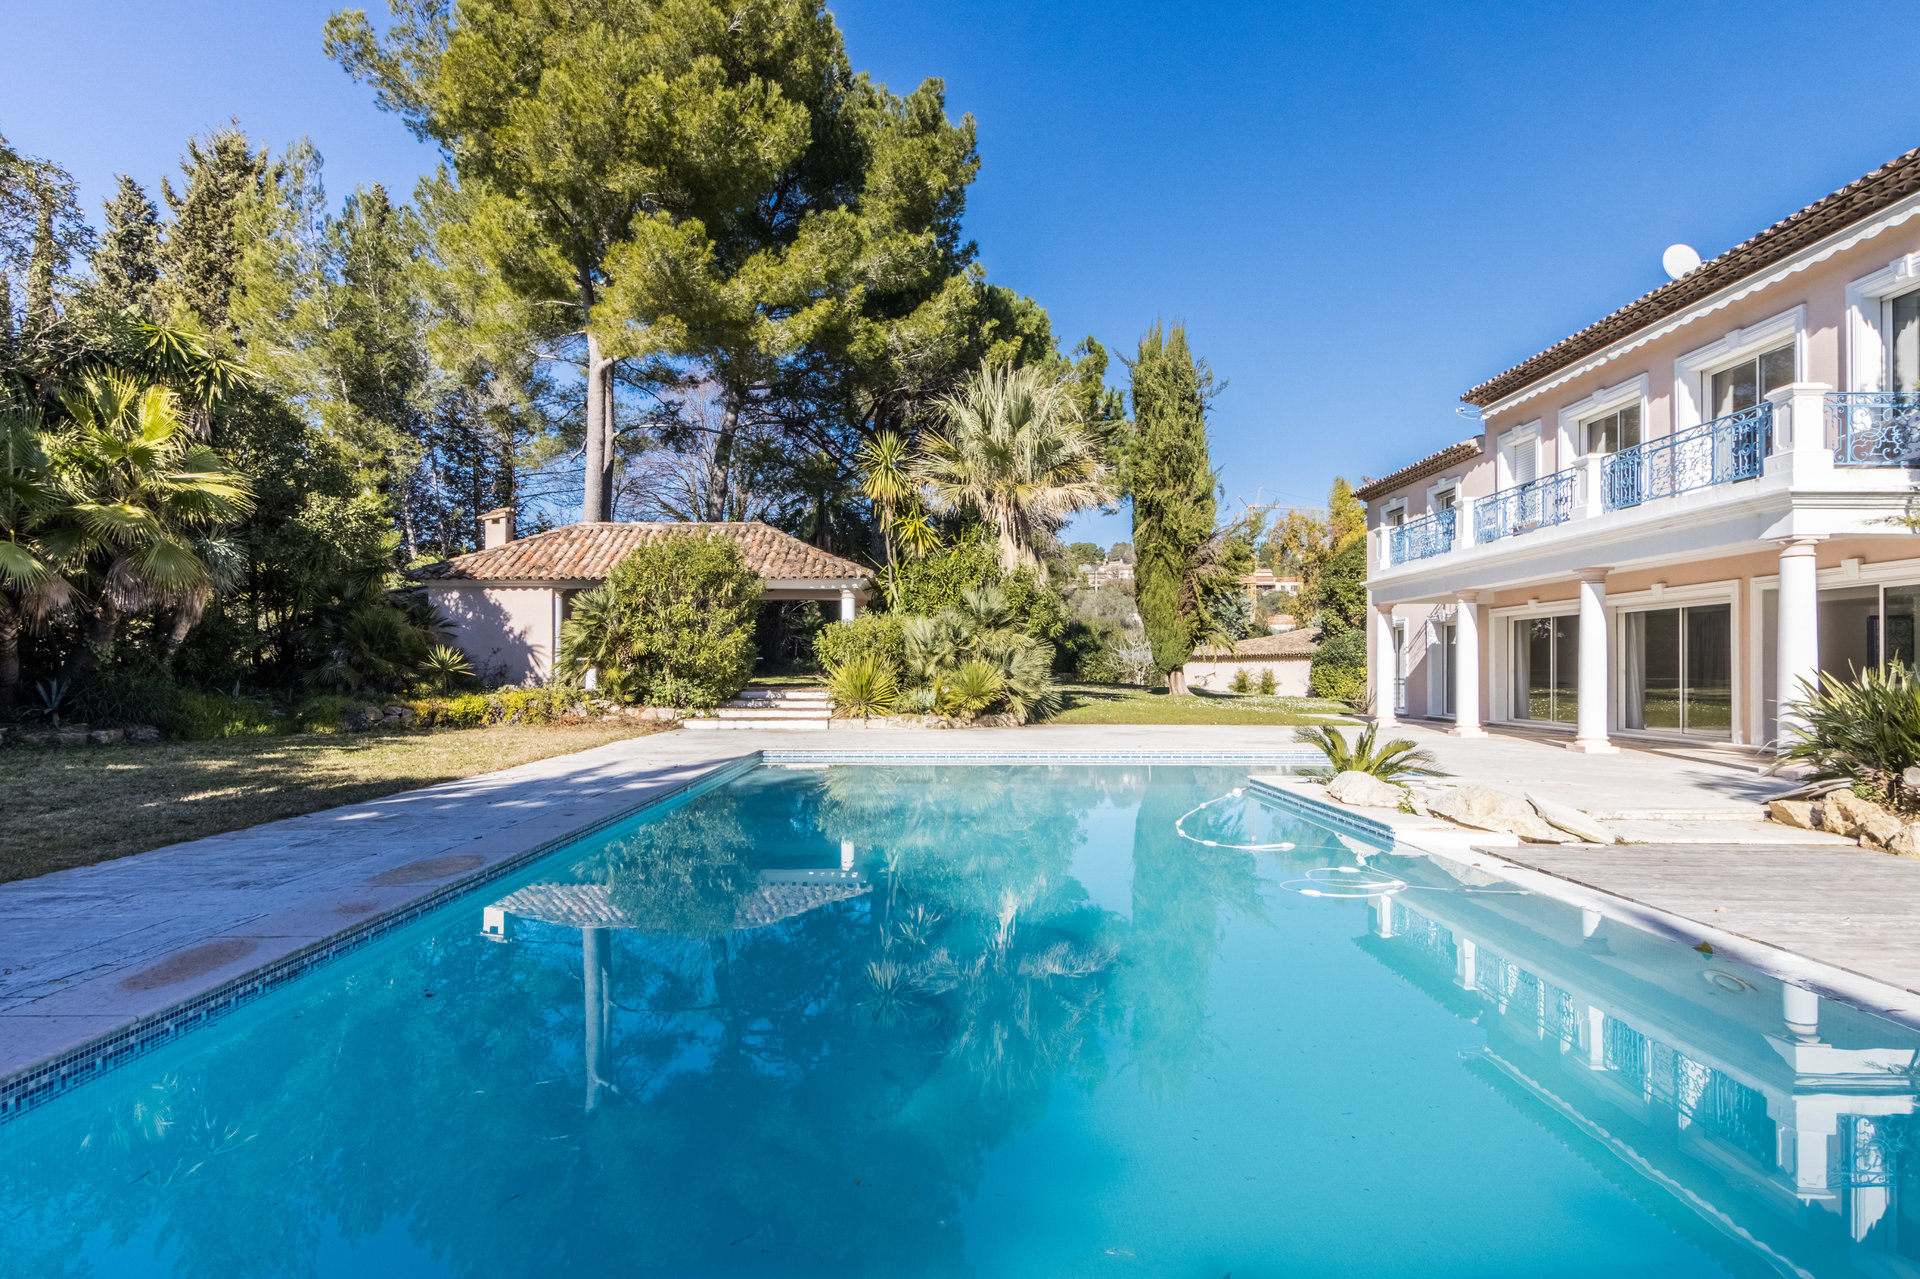 MOUGINS - VILLA 550m2 - POOL - LAND 4500M2